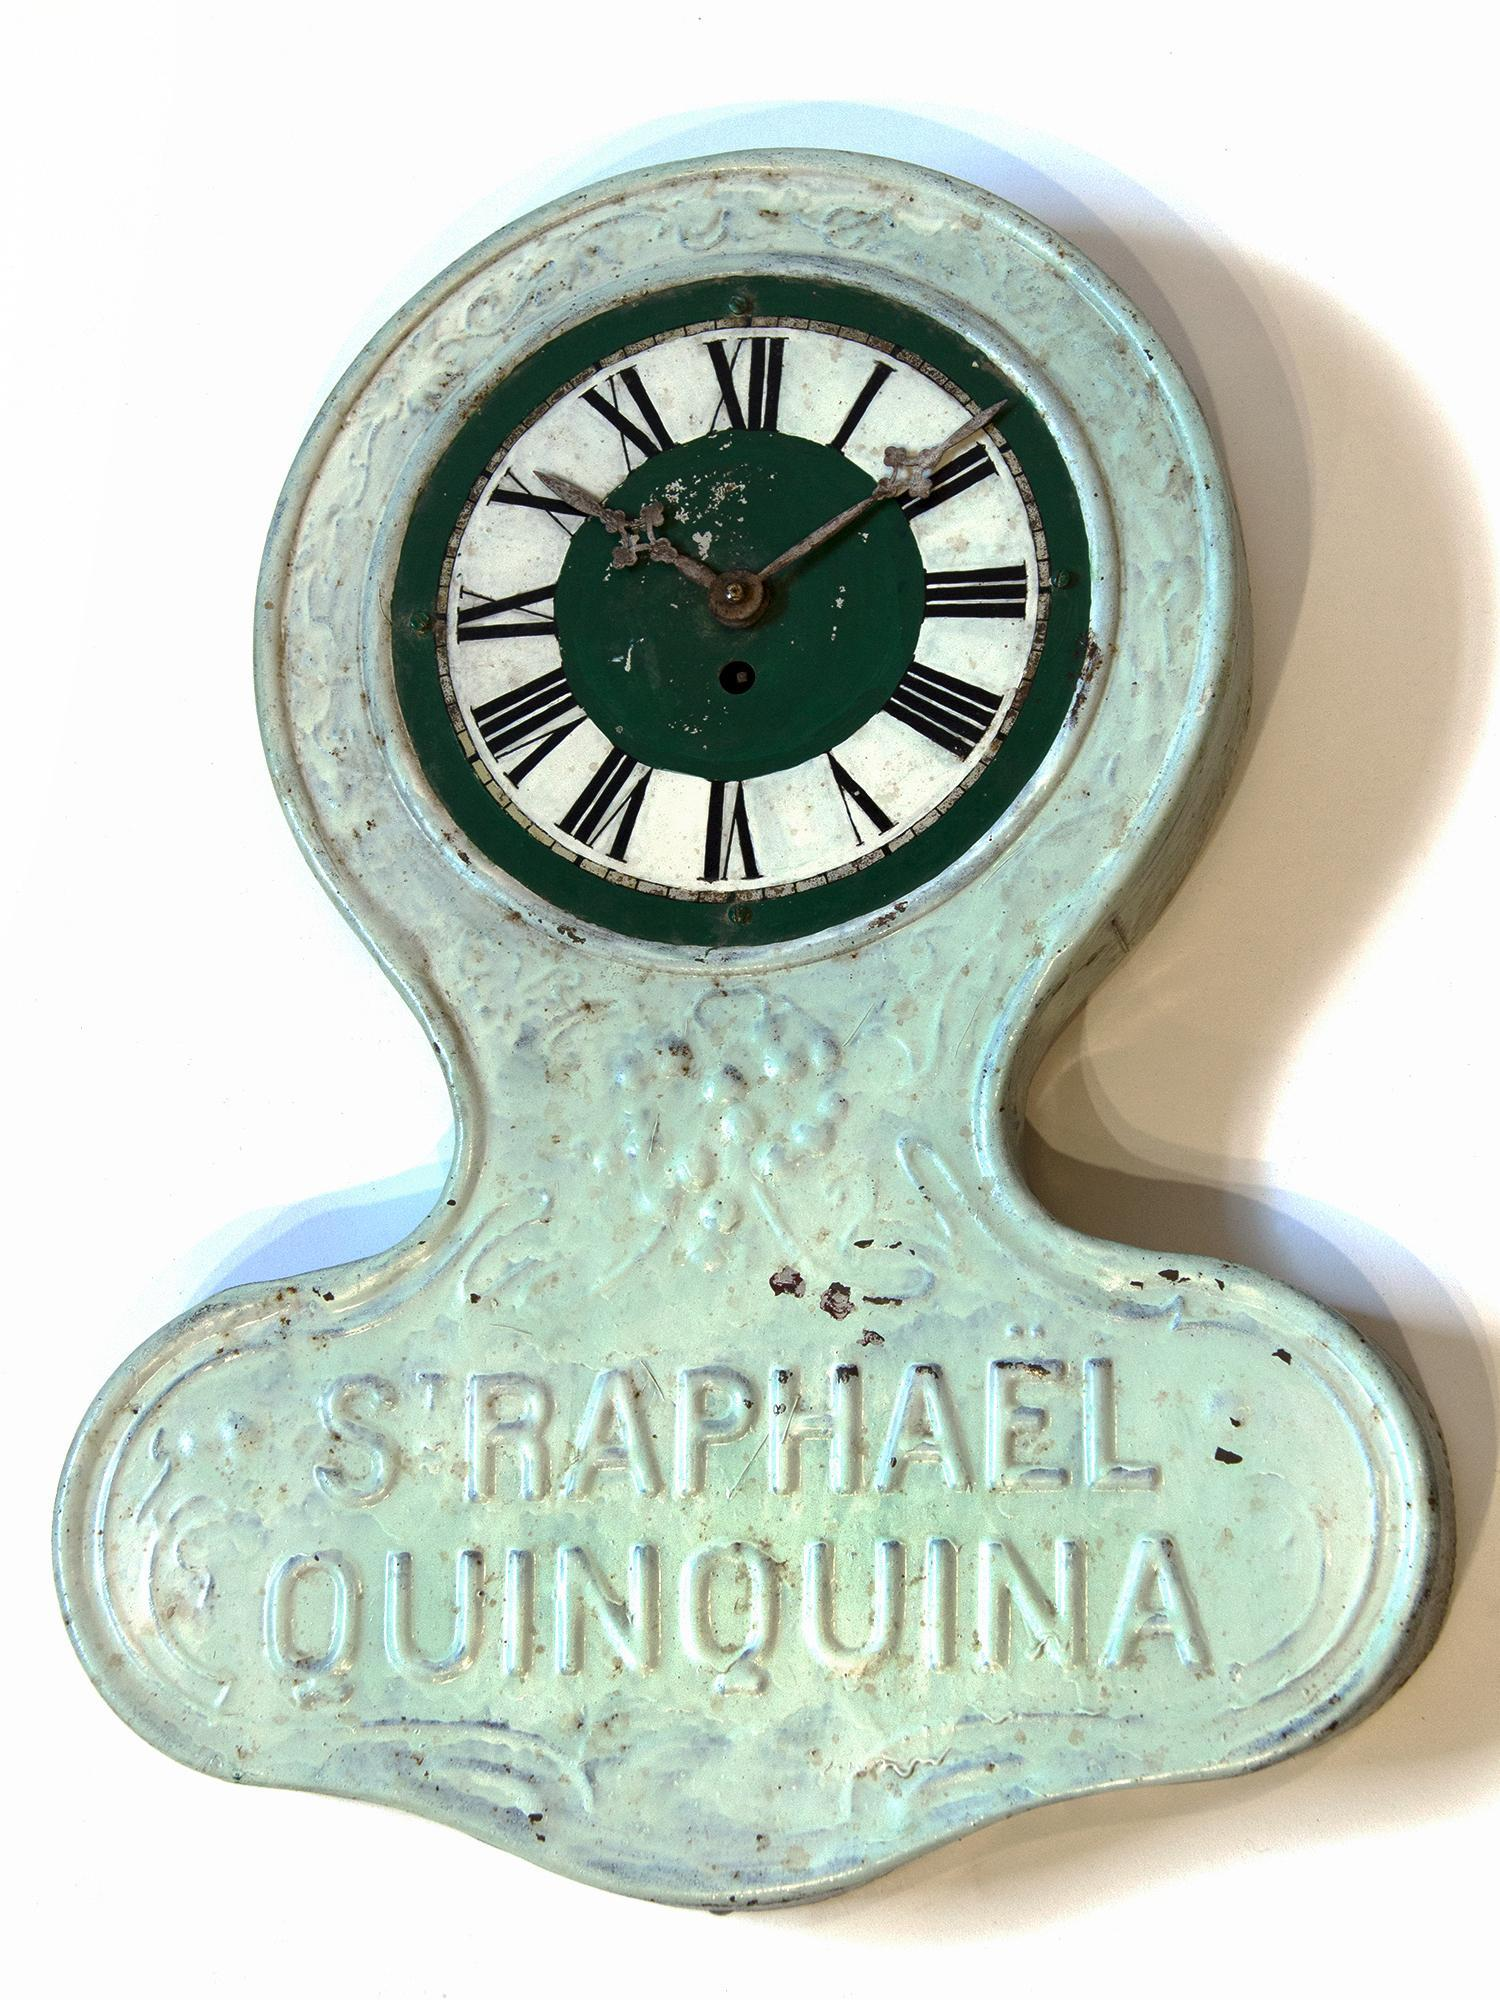 Rare Antique Tin Advertising Wall Clock From France